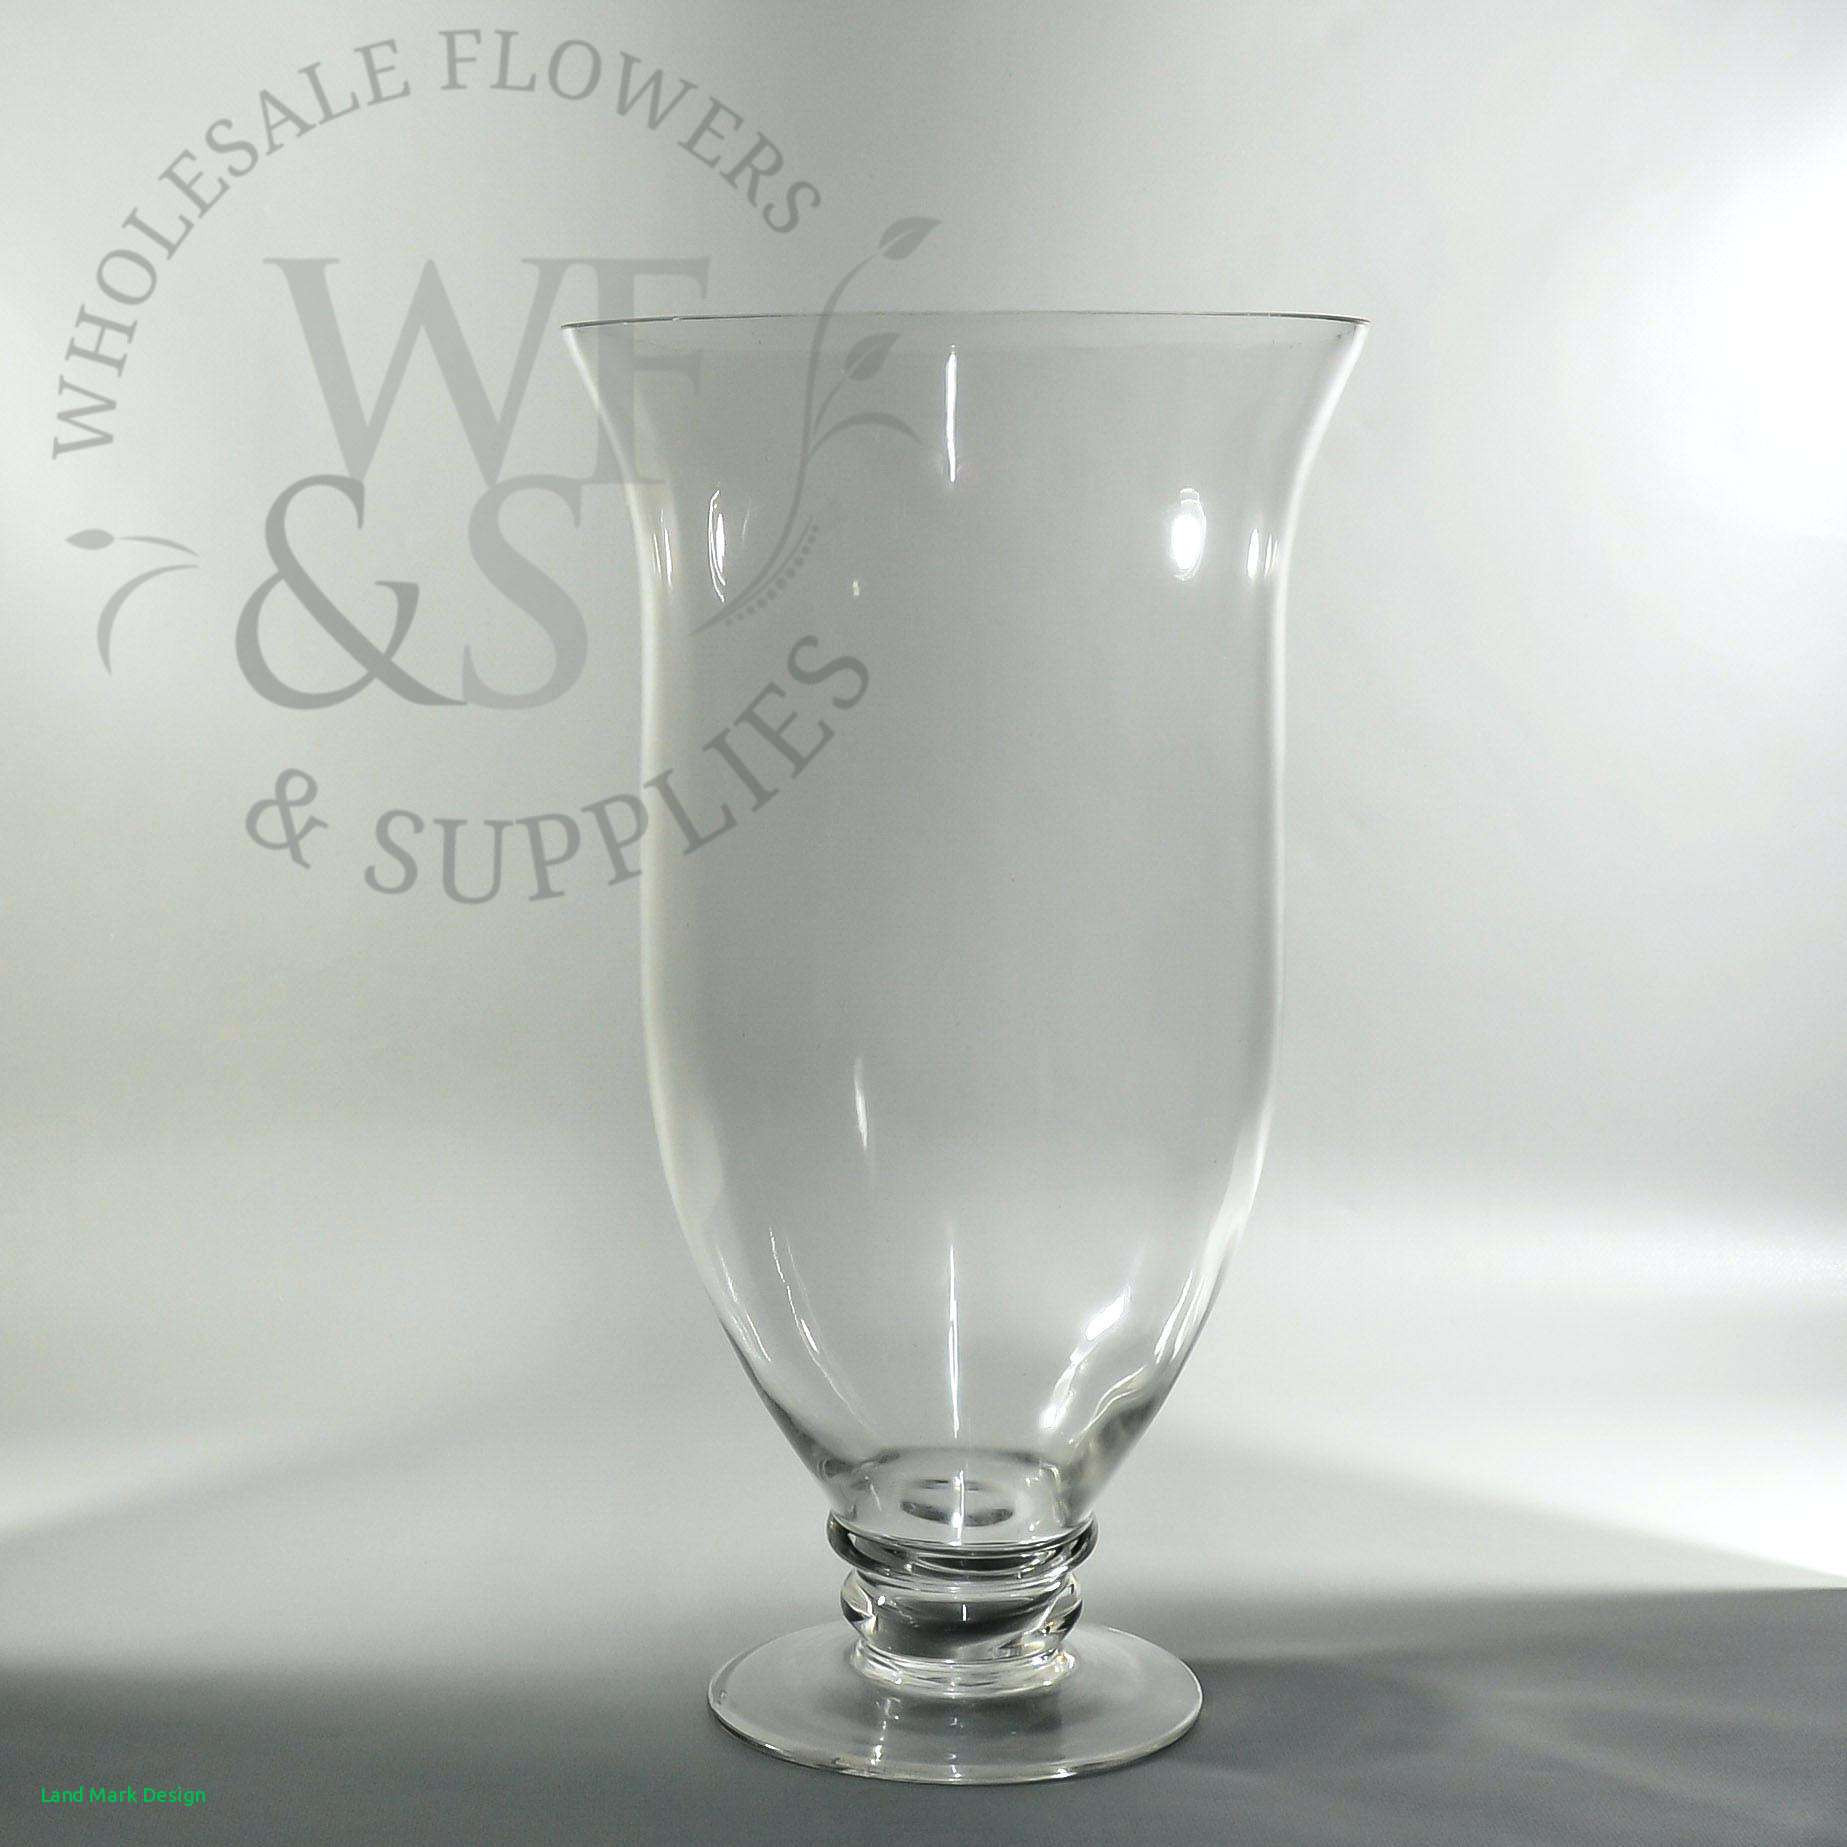 Silver Hurricane Vase Of Large Glass Vase Stock L H Vases 12 Inch Hurricane Clear Glass Vase Throughout Large Glass Vase Gallery Glass Vase Ideas Design Of Large Glass Vase Stock L H Vases 12